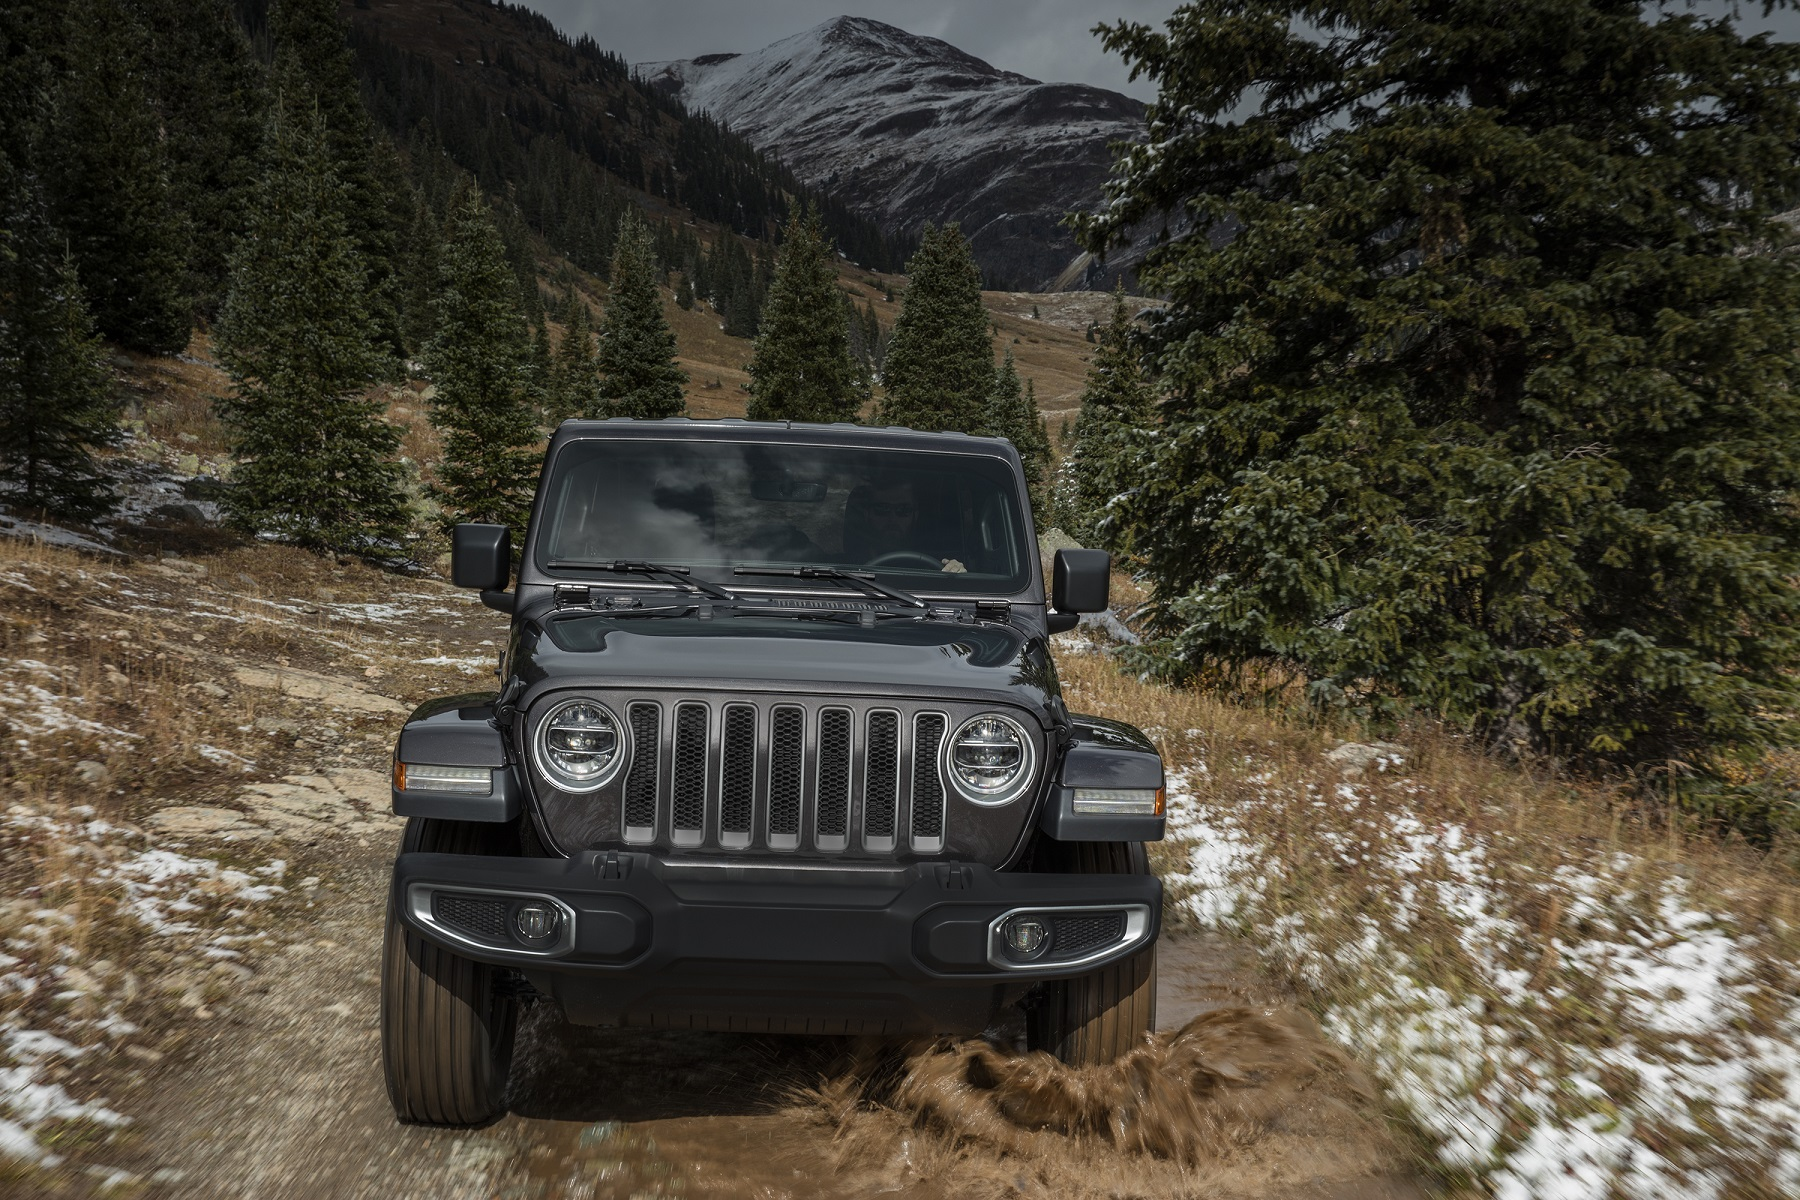 Manufacturer photo: The 2018 Jeep Wrangler delivers off-road capability with legendary four-wheel drive